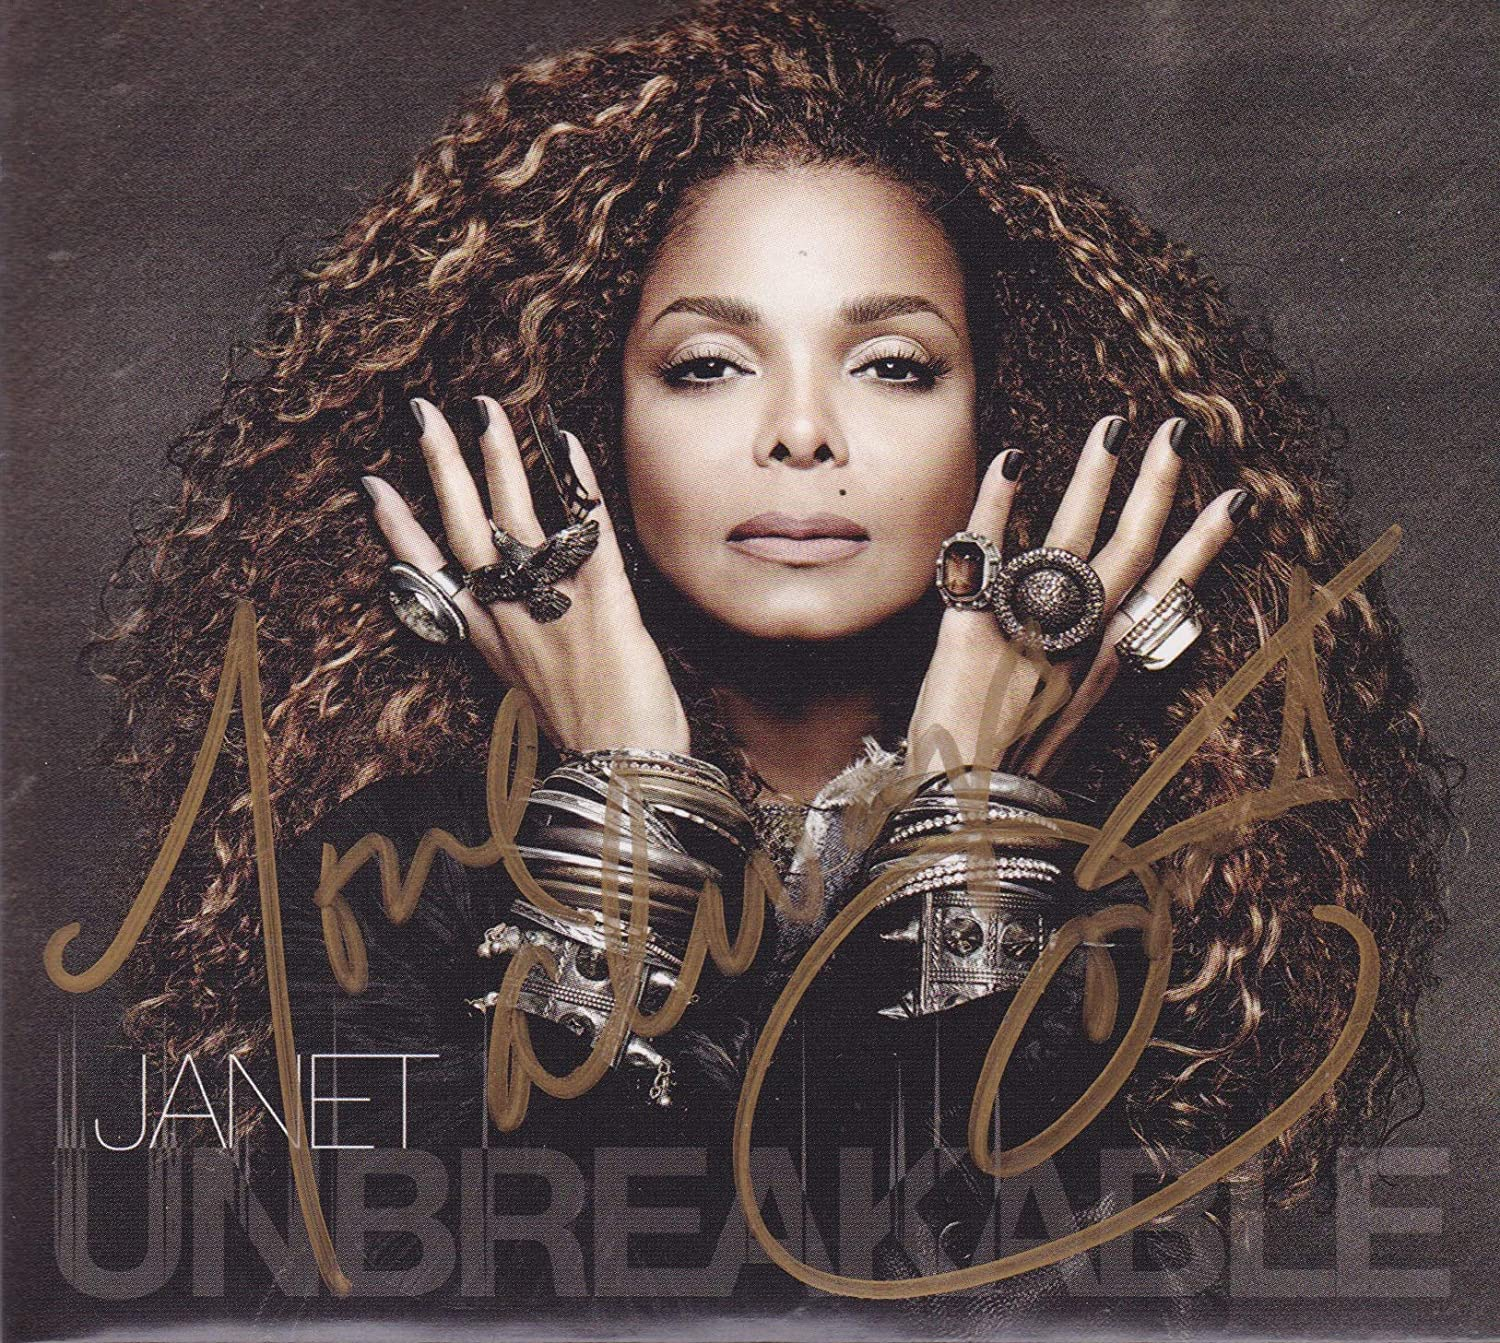 Janet Max 57% Brand new OFF Jackson CD signed